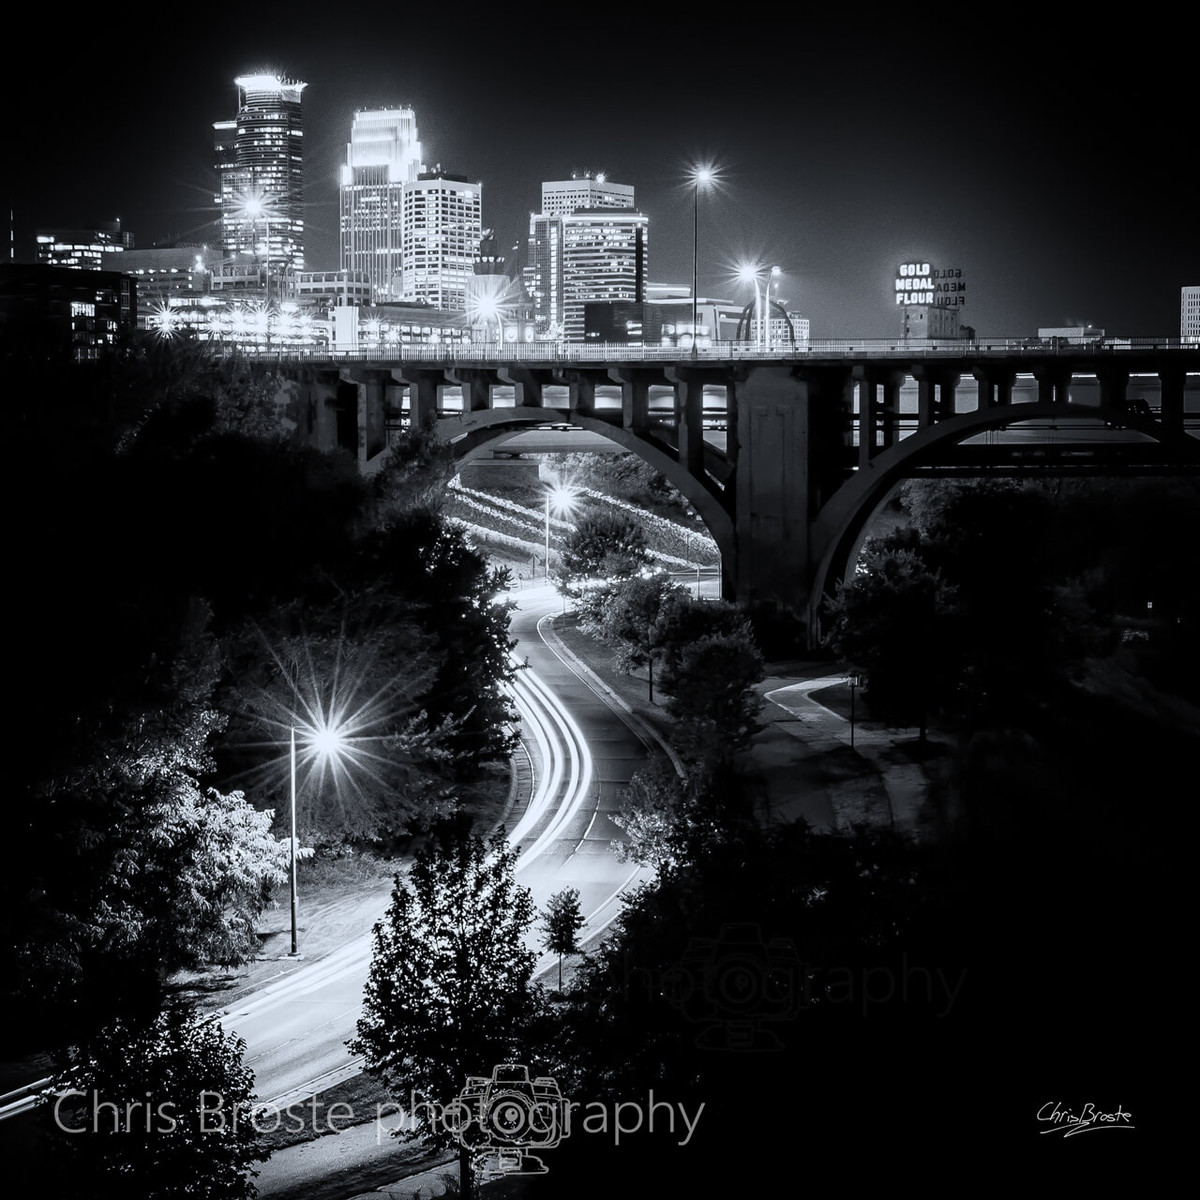 A black and white city skyline photograph of Minneapolis.